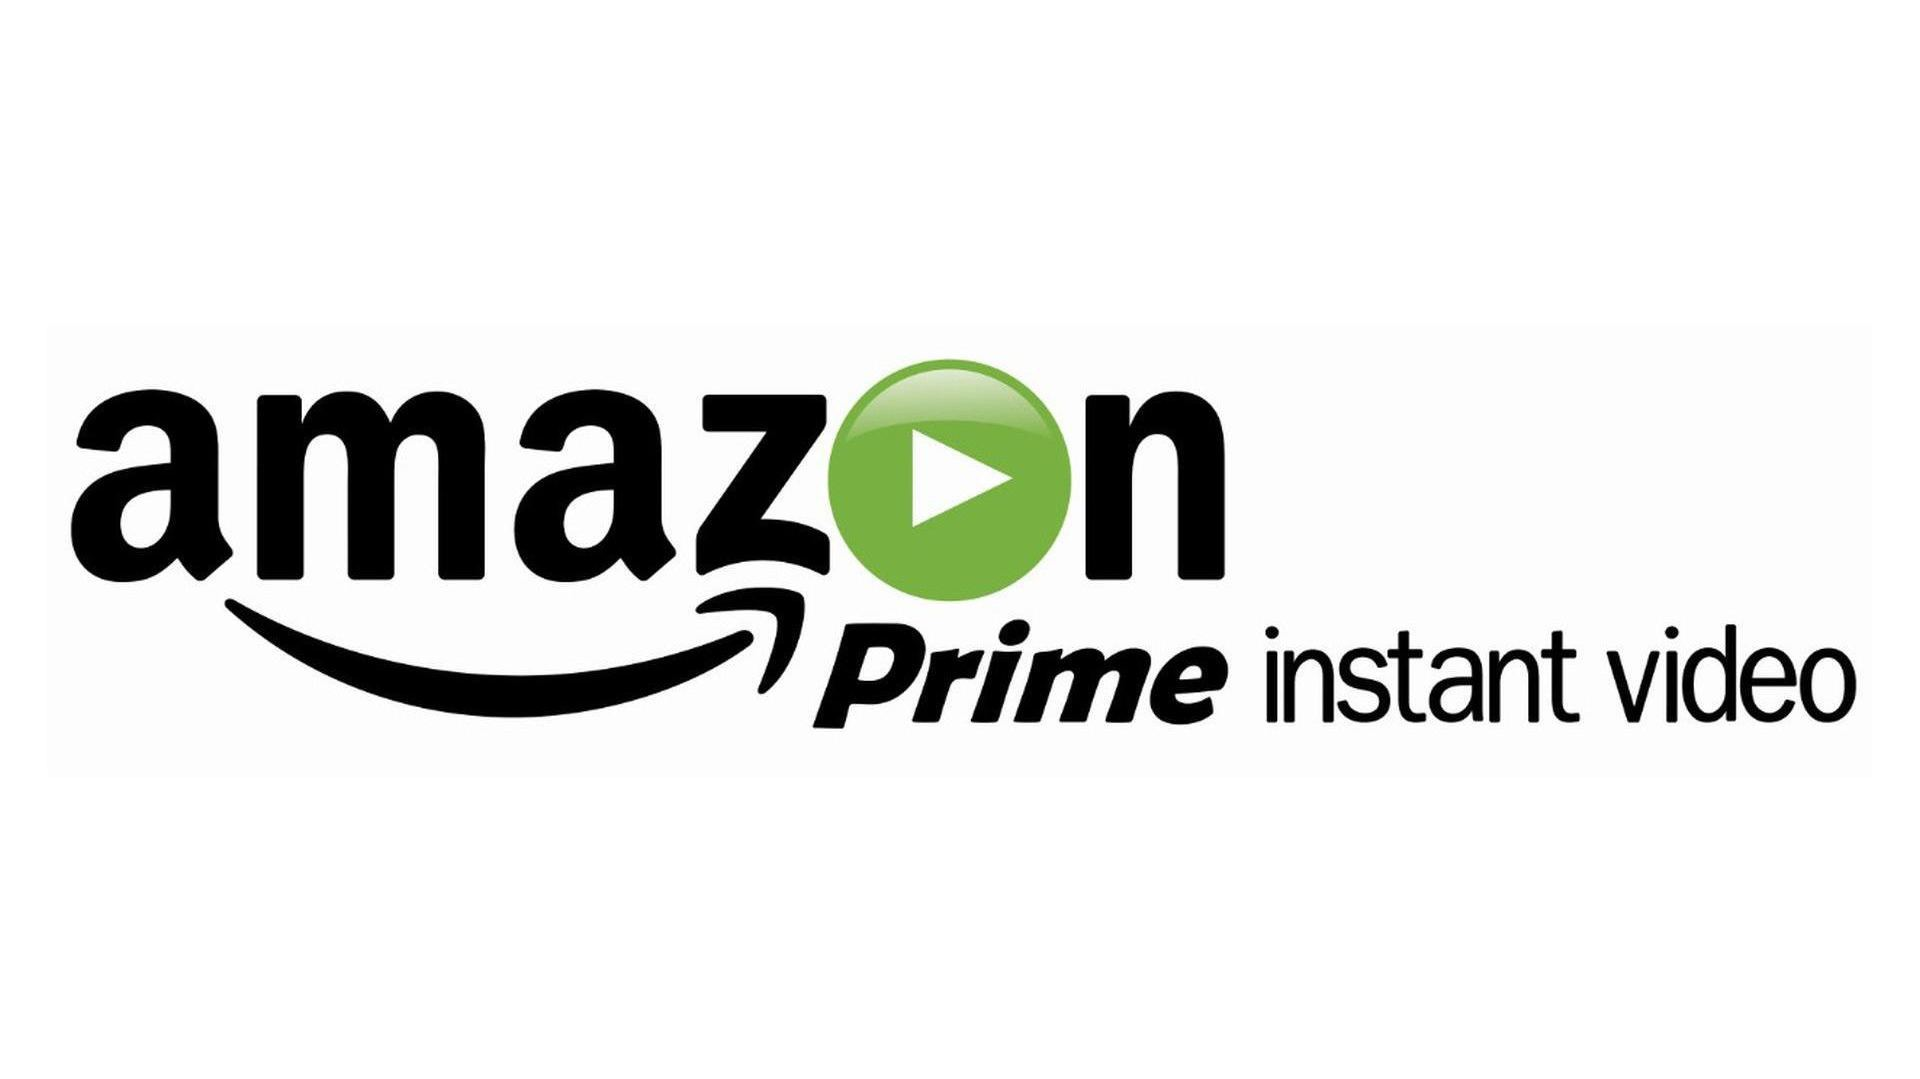 Enter your ZIP code, shop Prime Now, a local store, or restaurant, and add items to your cart. Check out using your existing Amazon Prime account and our local couriers will deliver to you in the delivery window you choose.